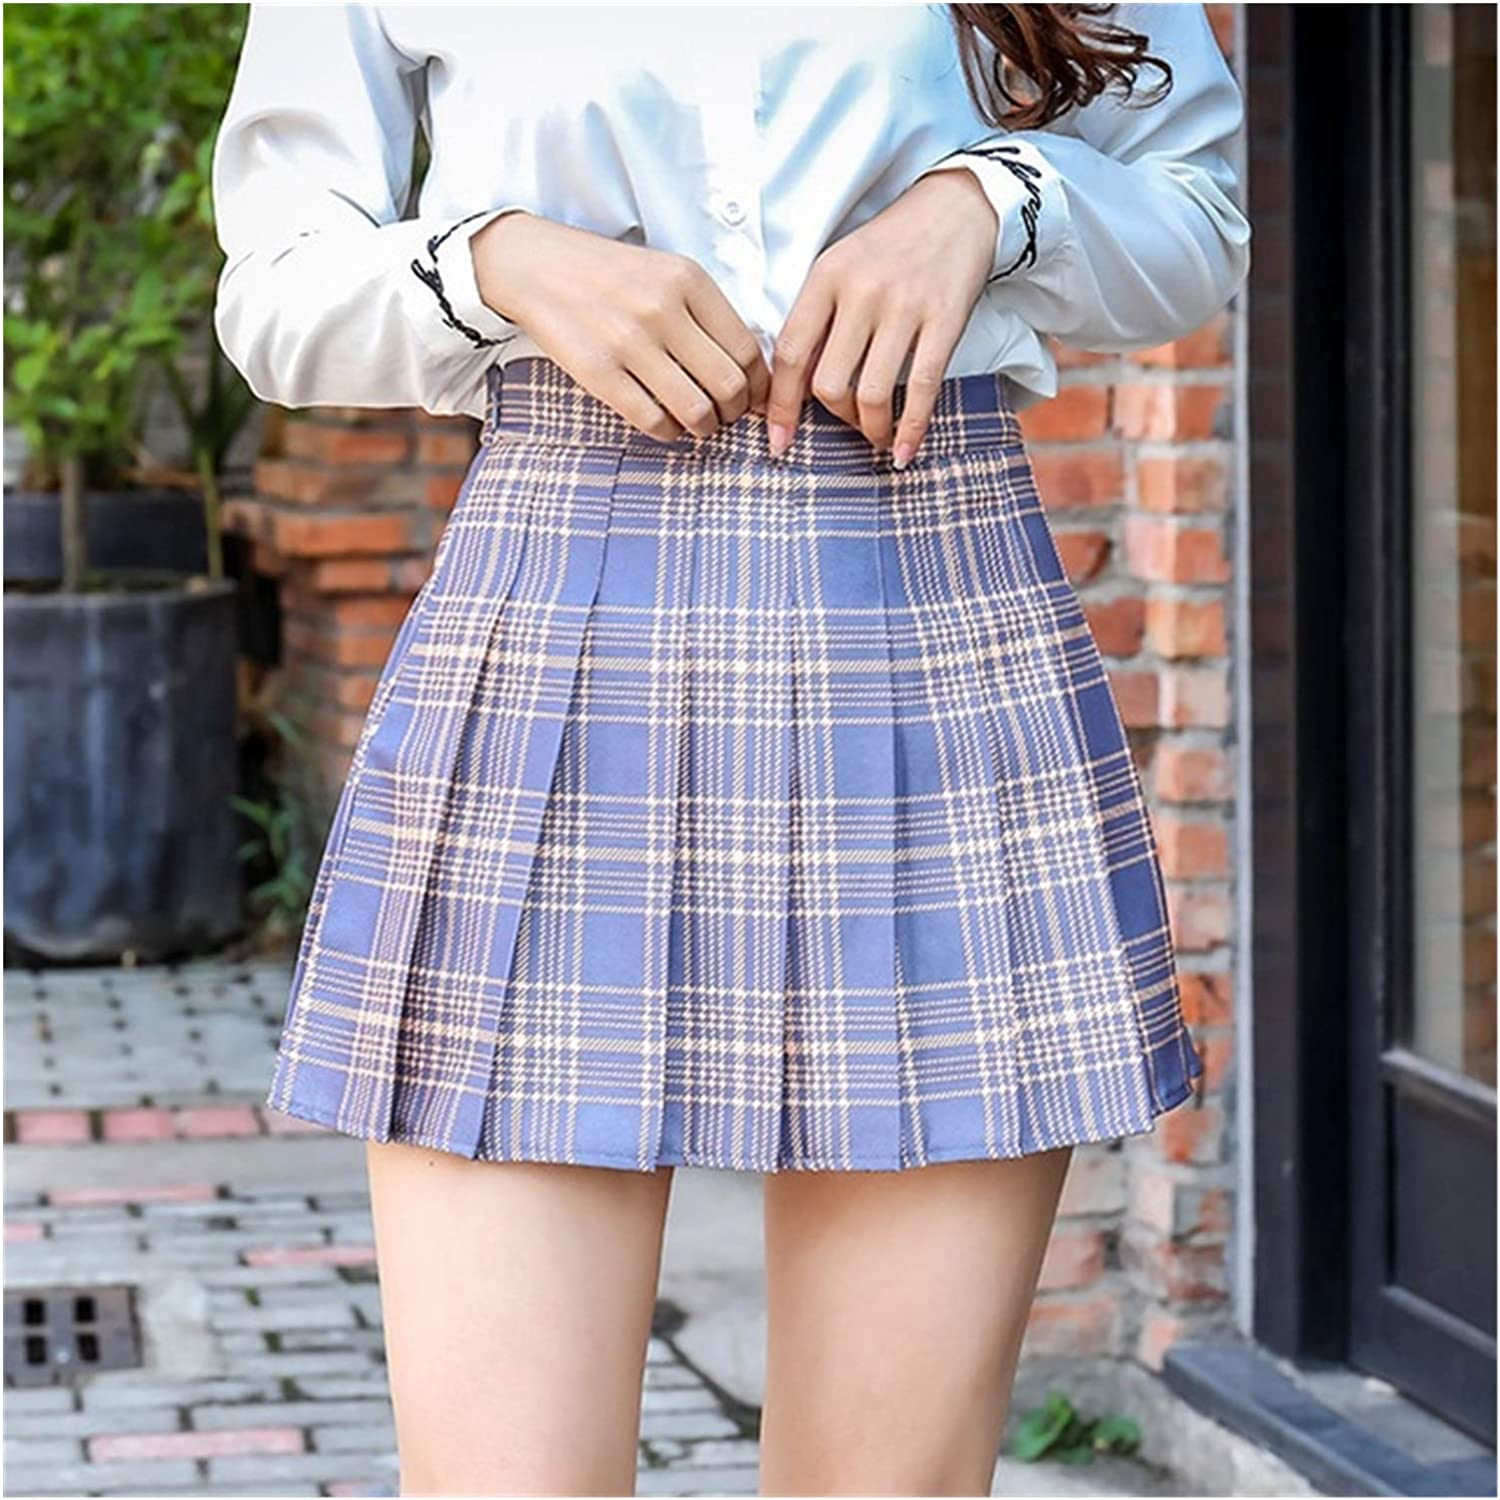 HMJPN High-Waist A-line Skirt Striped Pleated Stitching Women's 5 ☆ very popular Cash special price